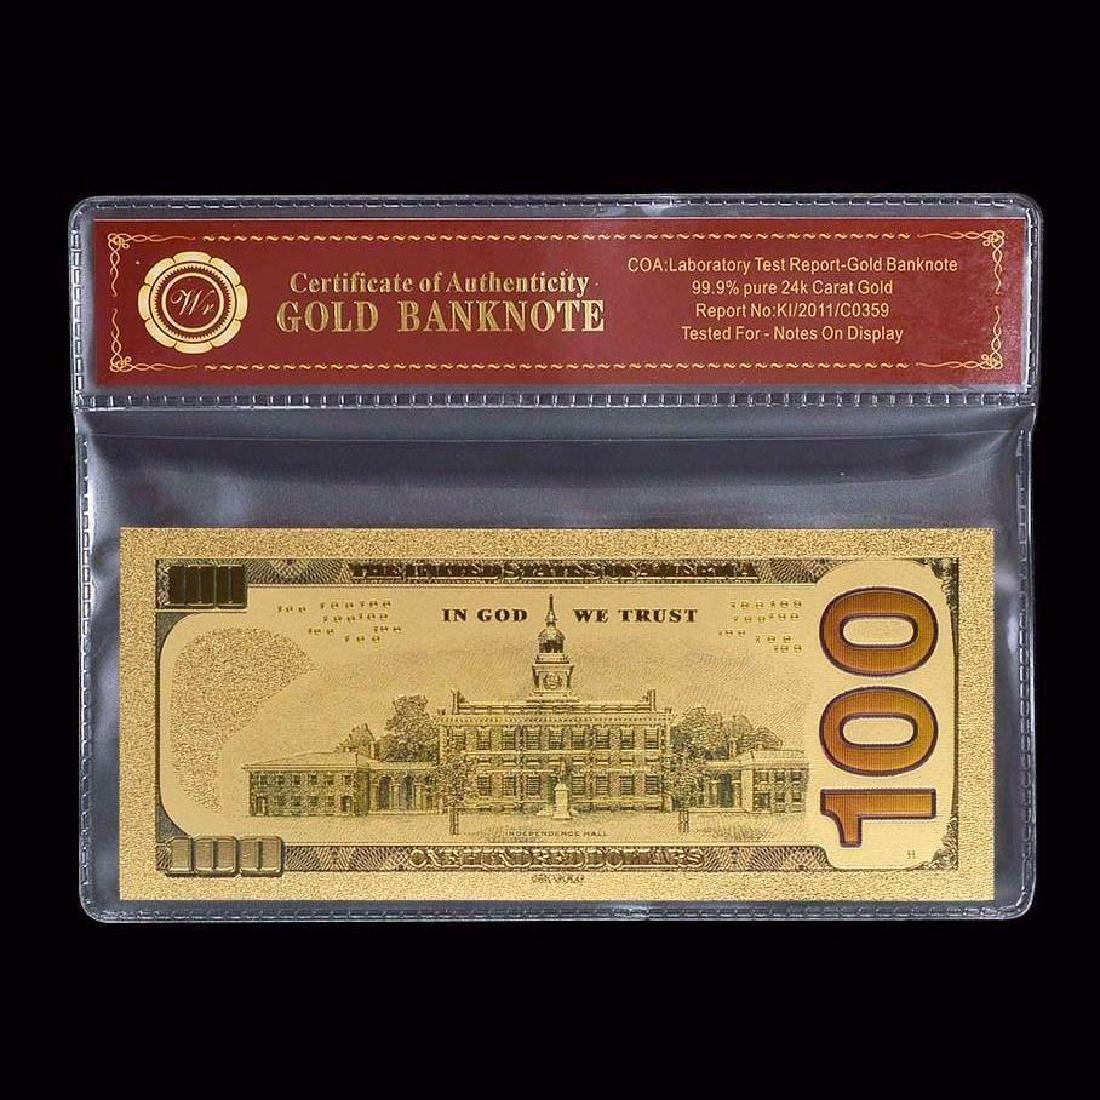 USA $100 24K Gold Clad Banknote - 2